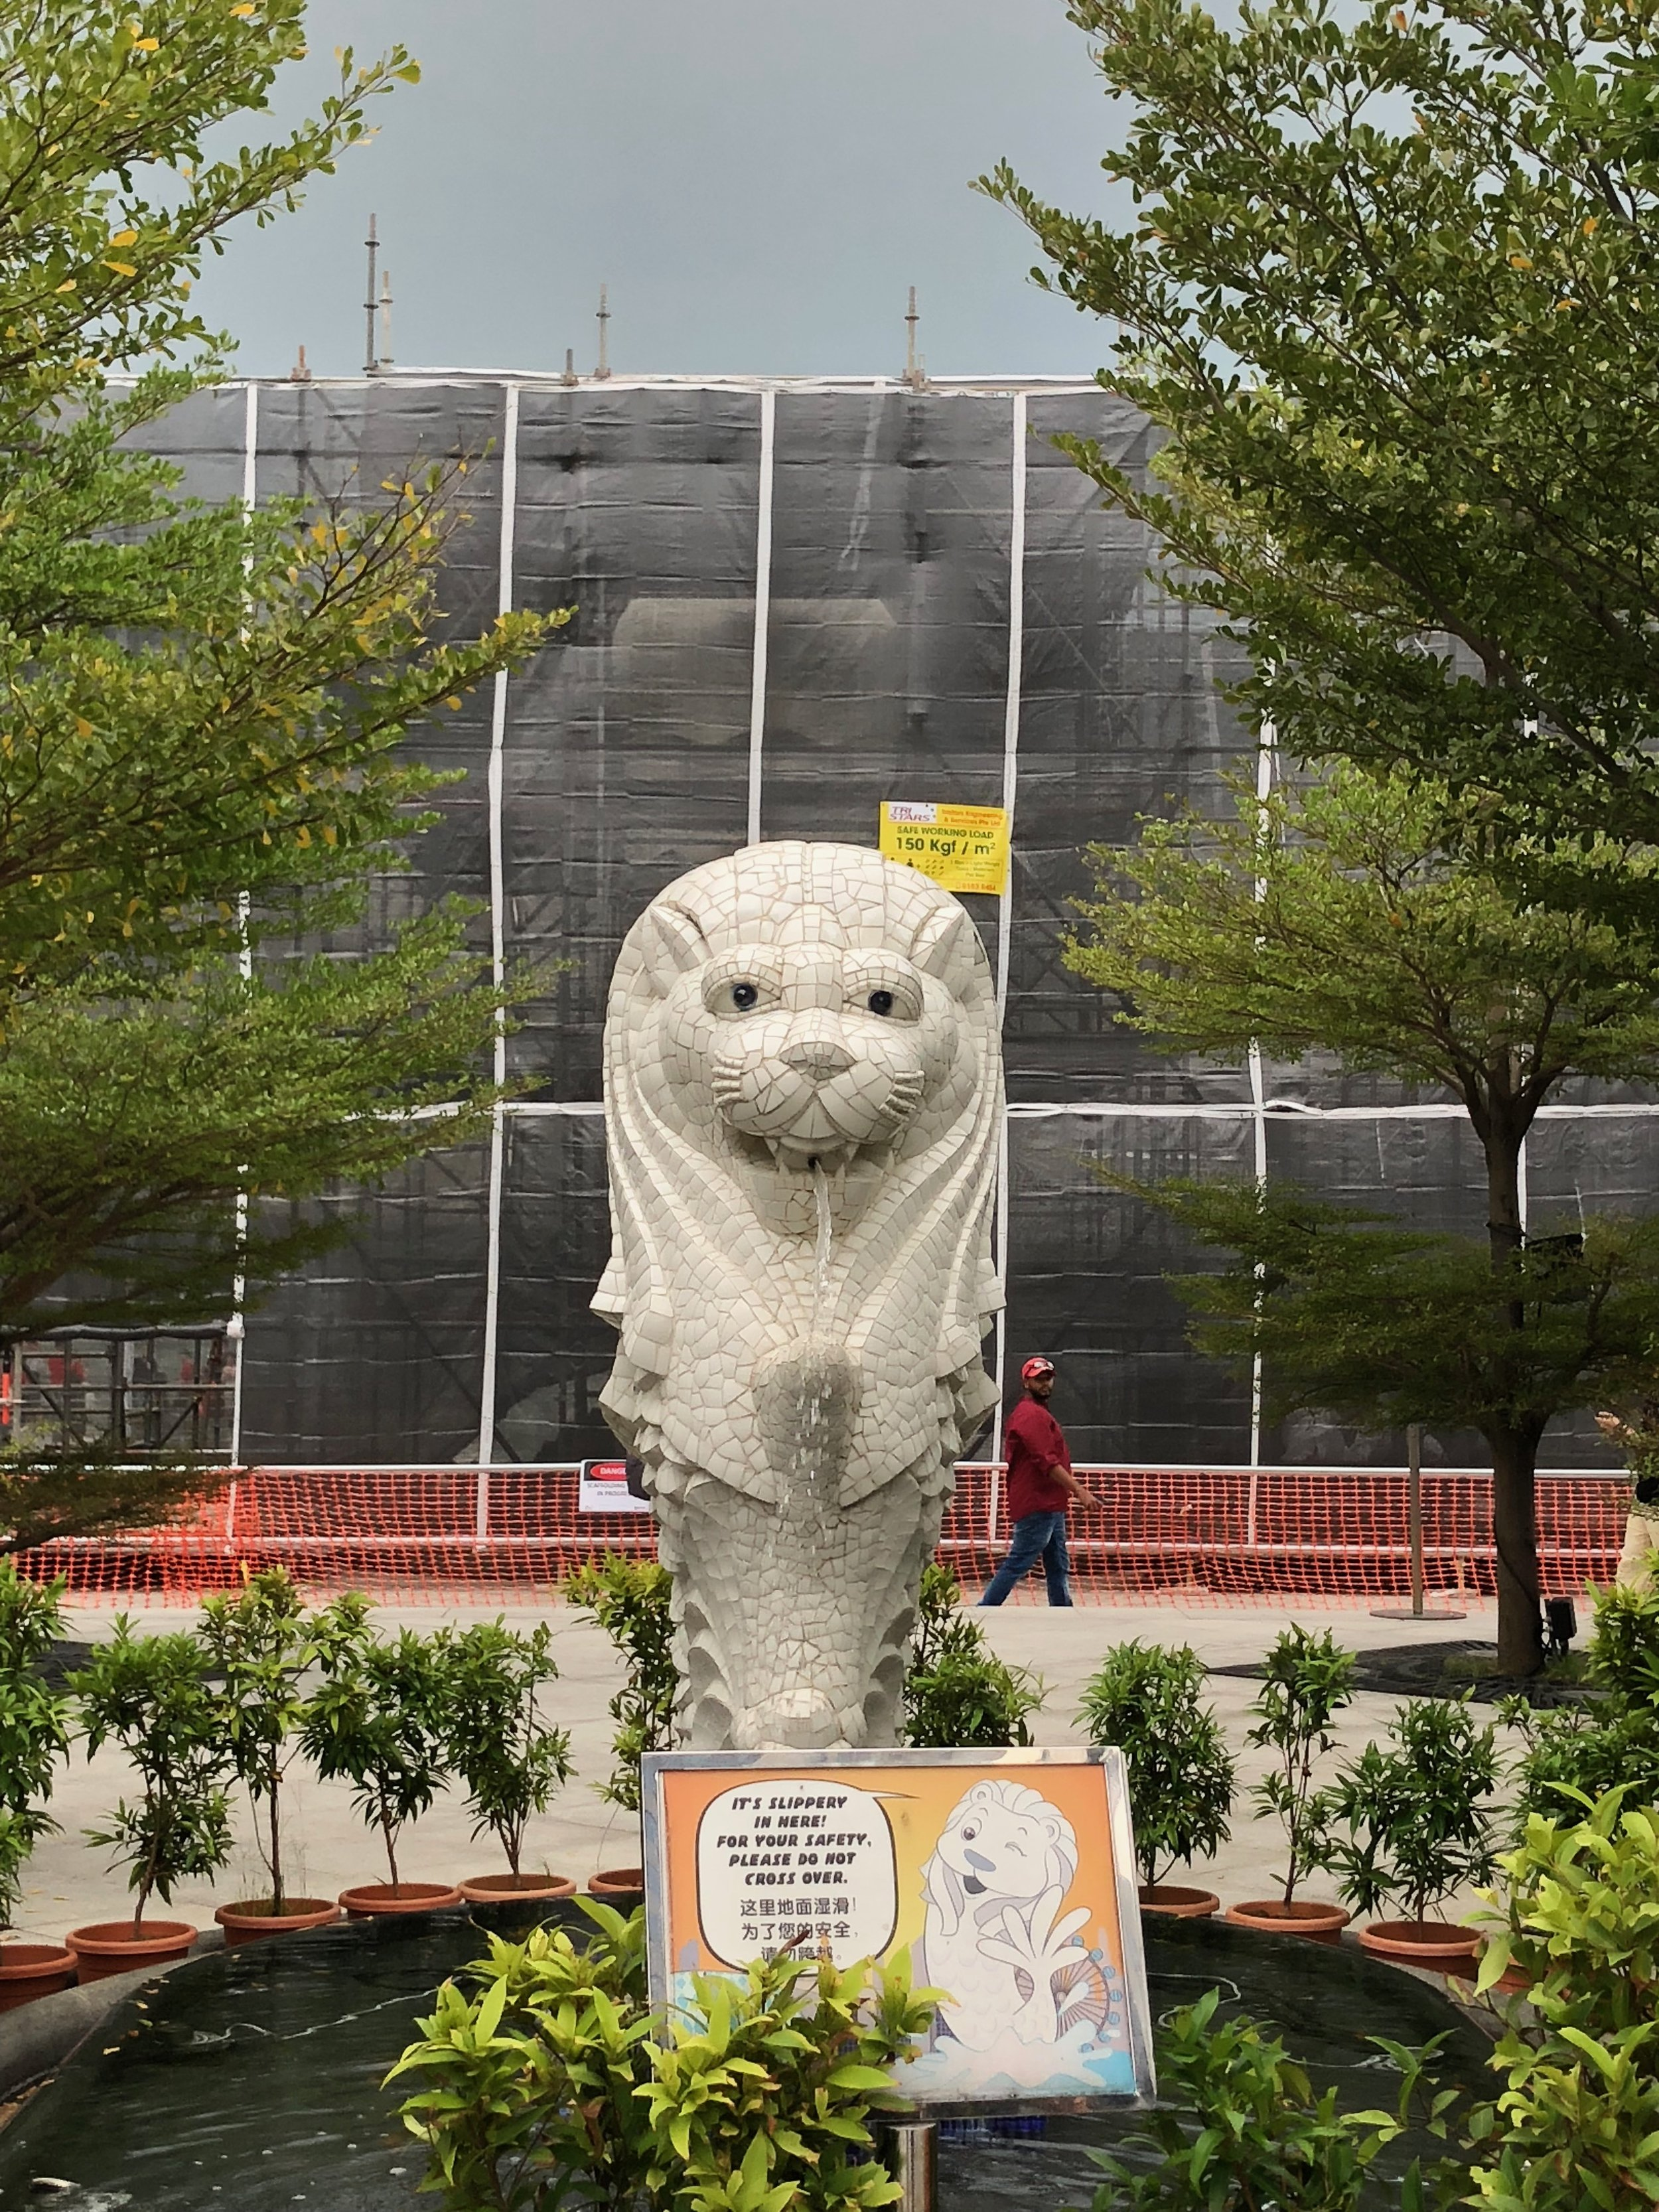 The Merlion is a half-fish, half-lion fountain that overlooks the waters of the Esplanade Bridge. When I went there in March, however, the real Merlion statue was under construction and all I got to see was this smaller, less impressive version.